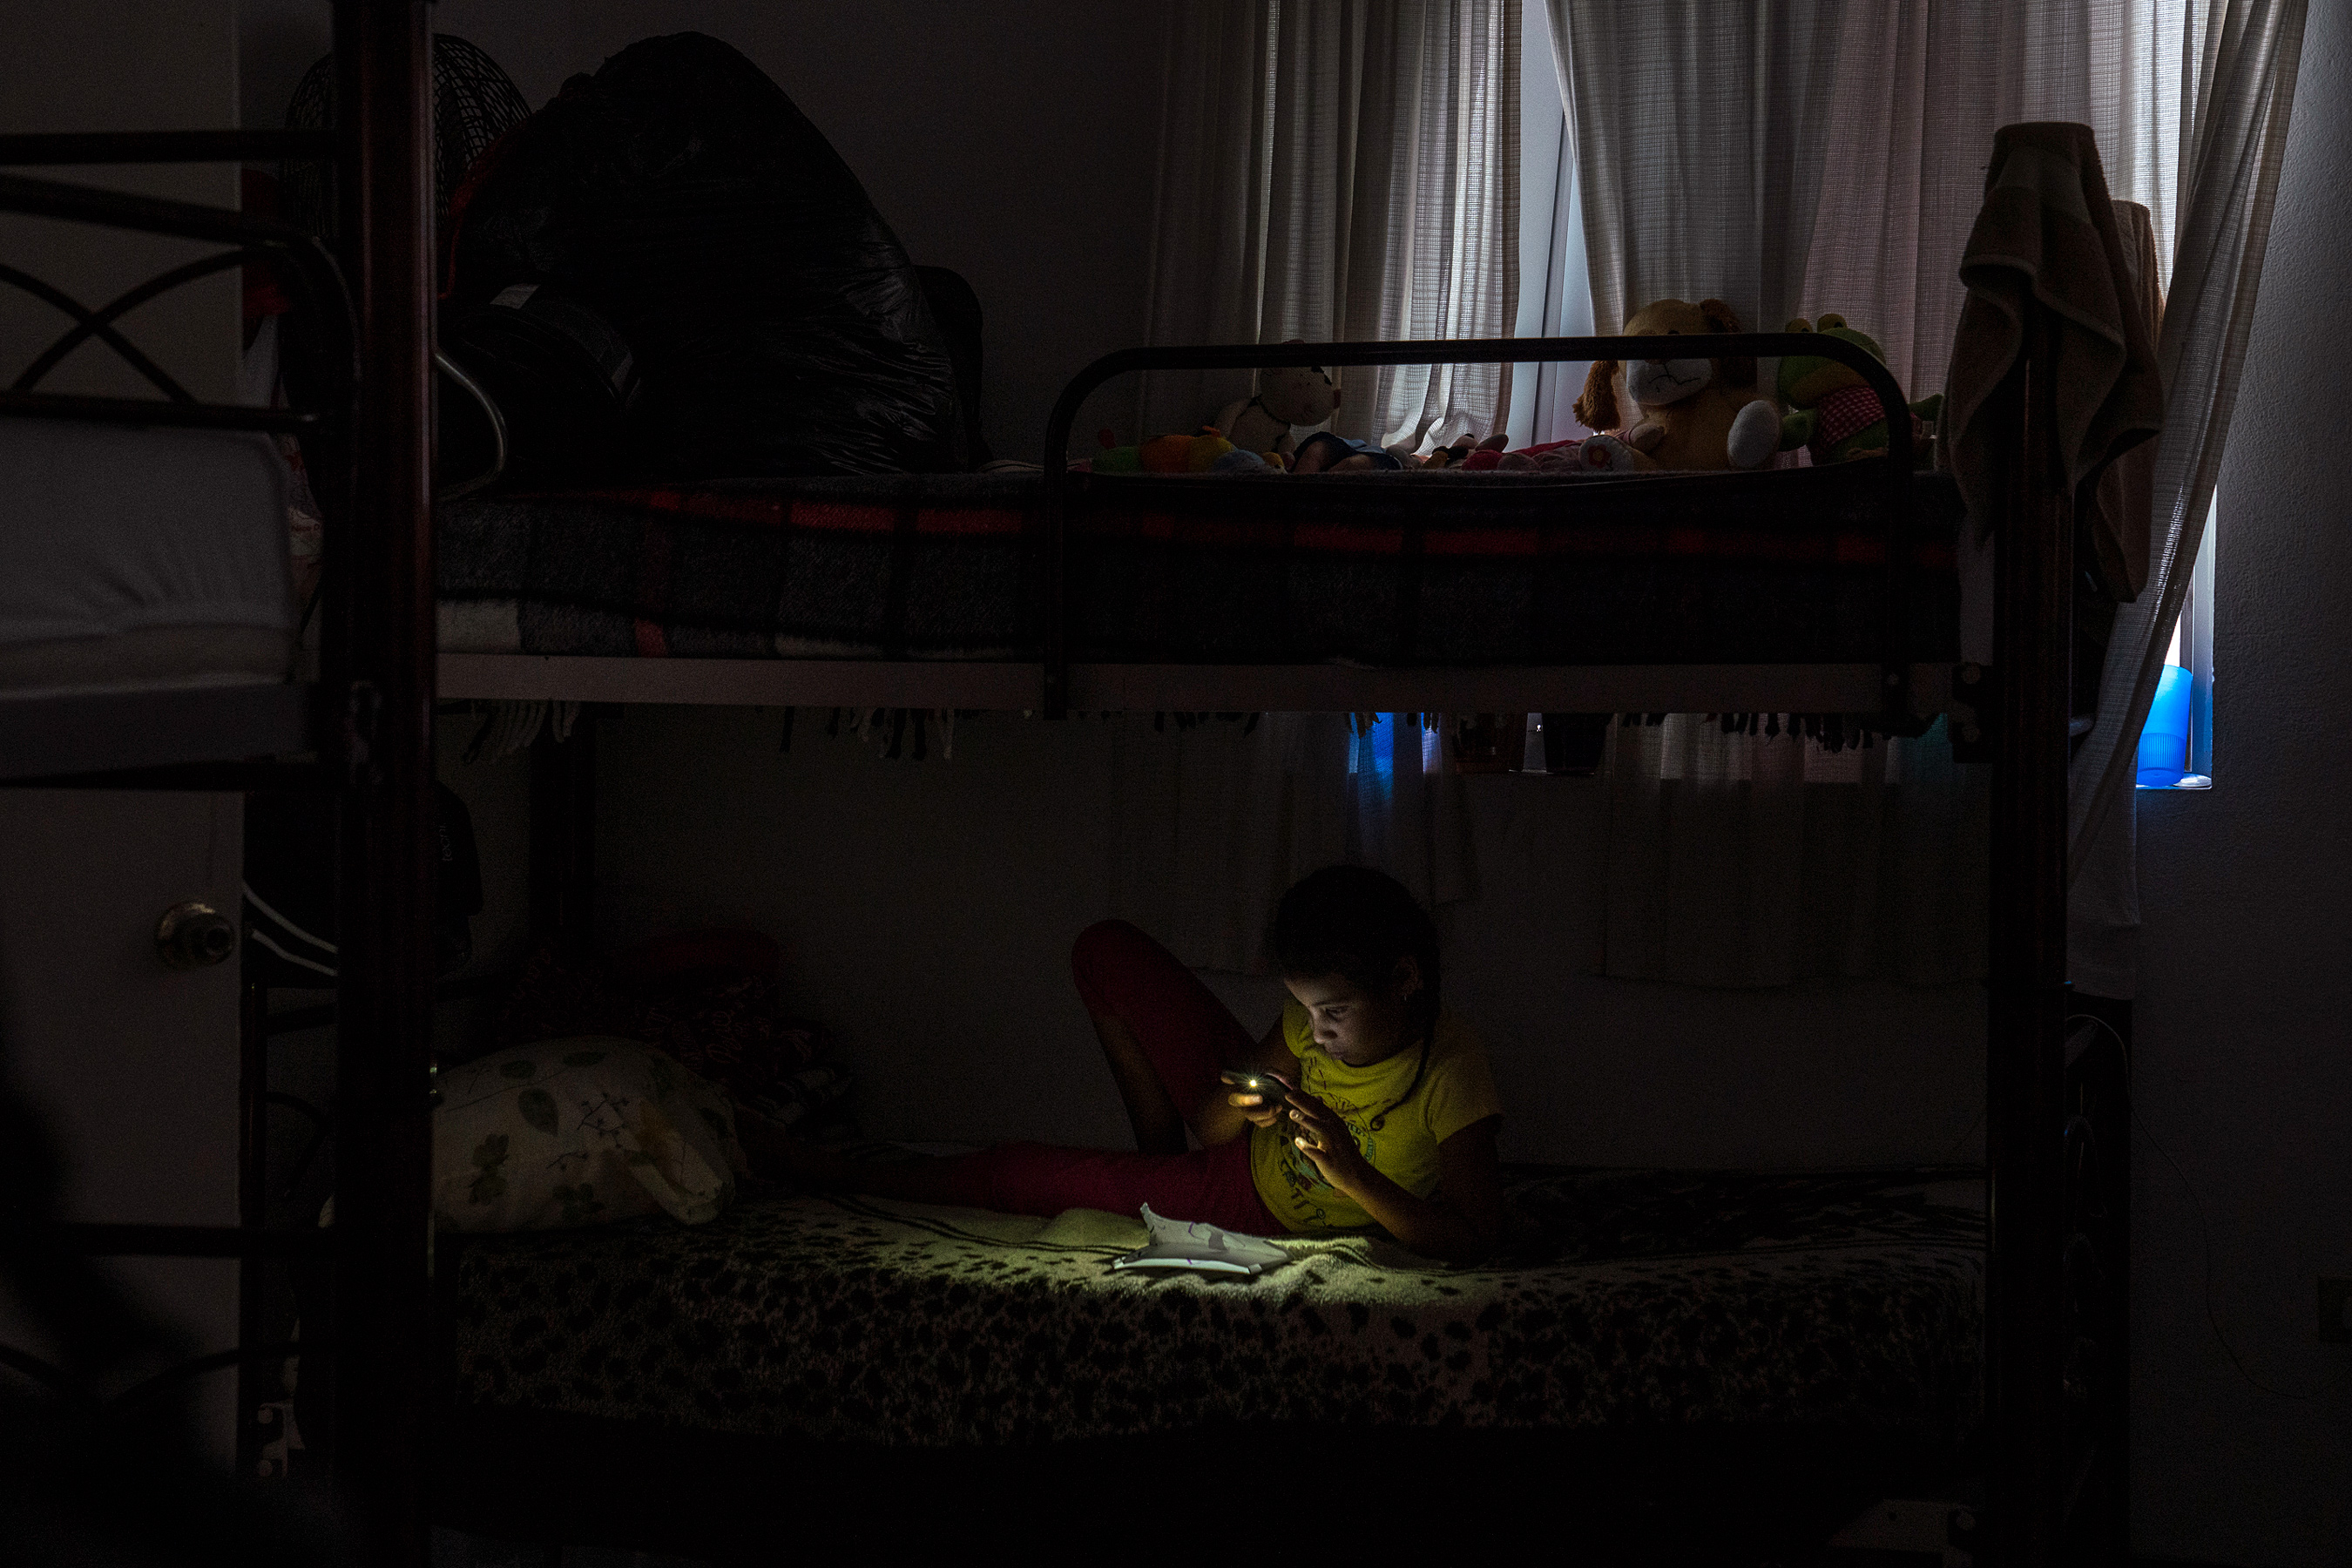 Nahomy, 7, from Honduras, plays with a cell phone in a shelter in Matamoros, Tamaulipas on Nov. 7, 2018. Her and her family have been waiting for weeks to seek asylum in the U.S. because Customs and Border Protection, CBP, agents have told them that they are at full capacity.Photo: Verónica G. Cárdenas for The Intercept